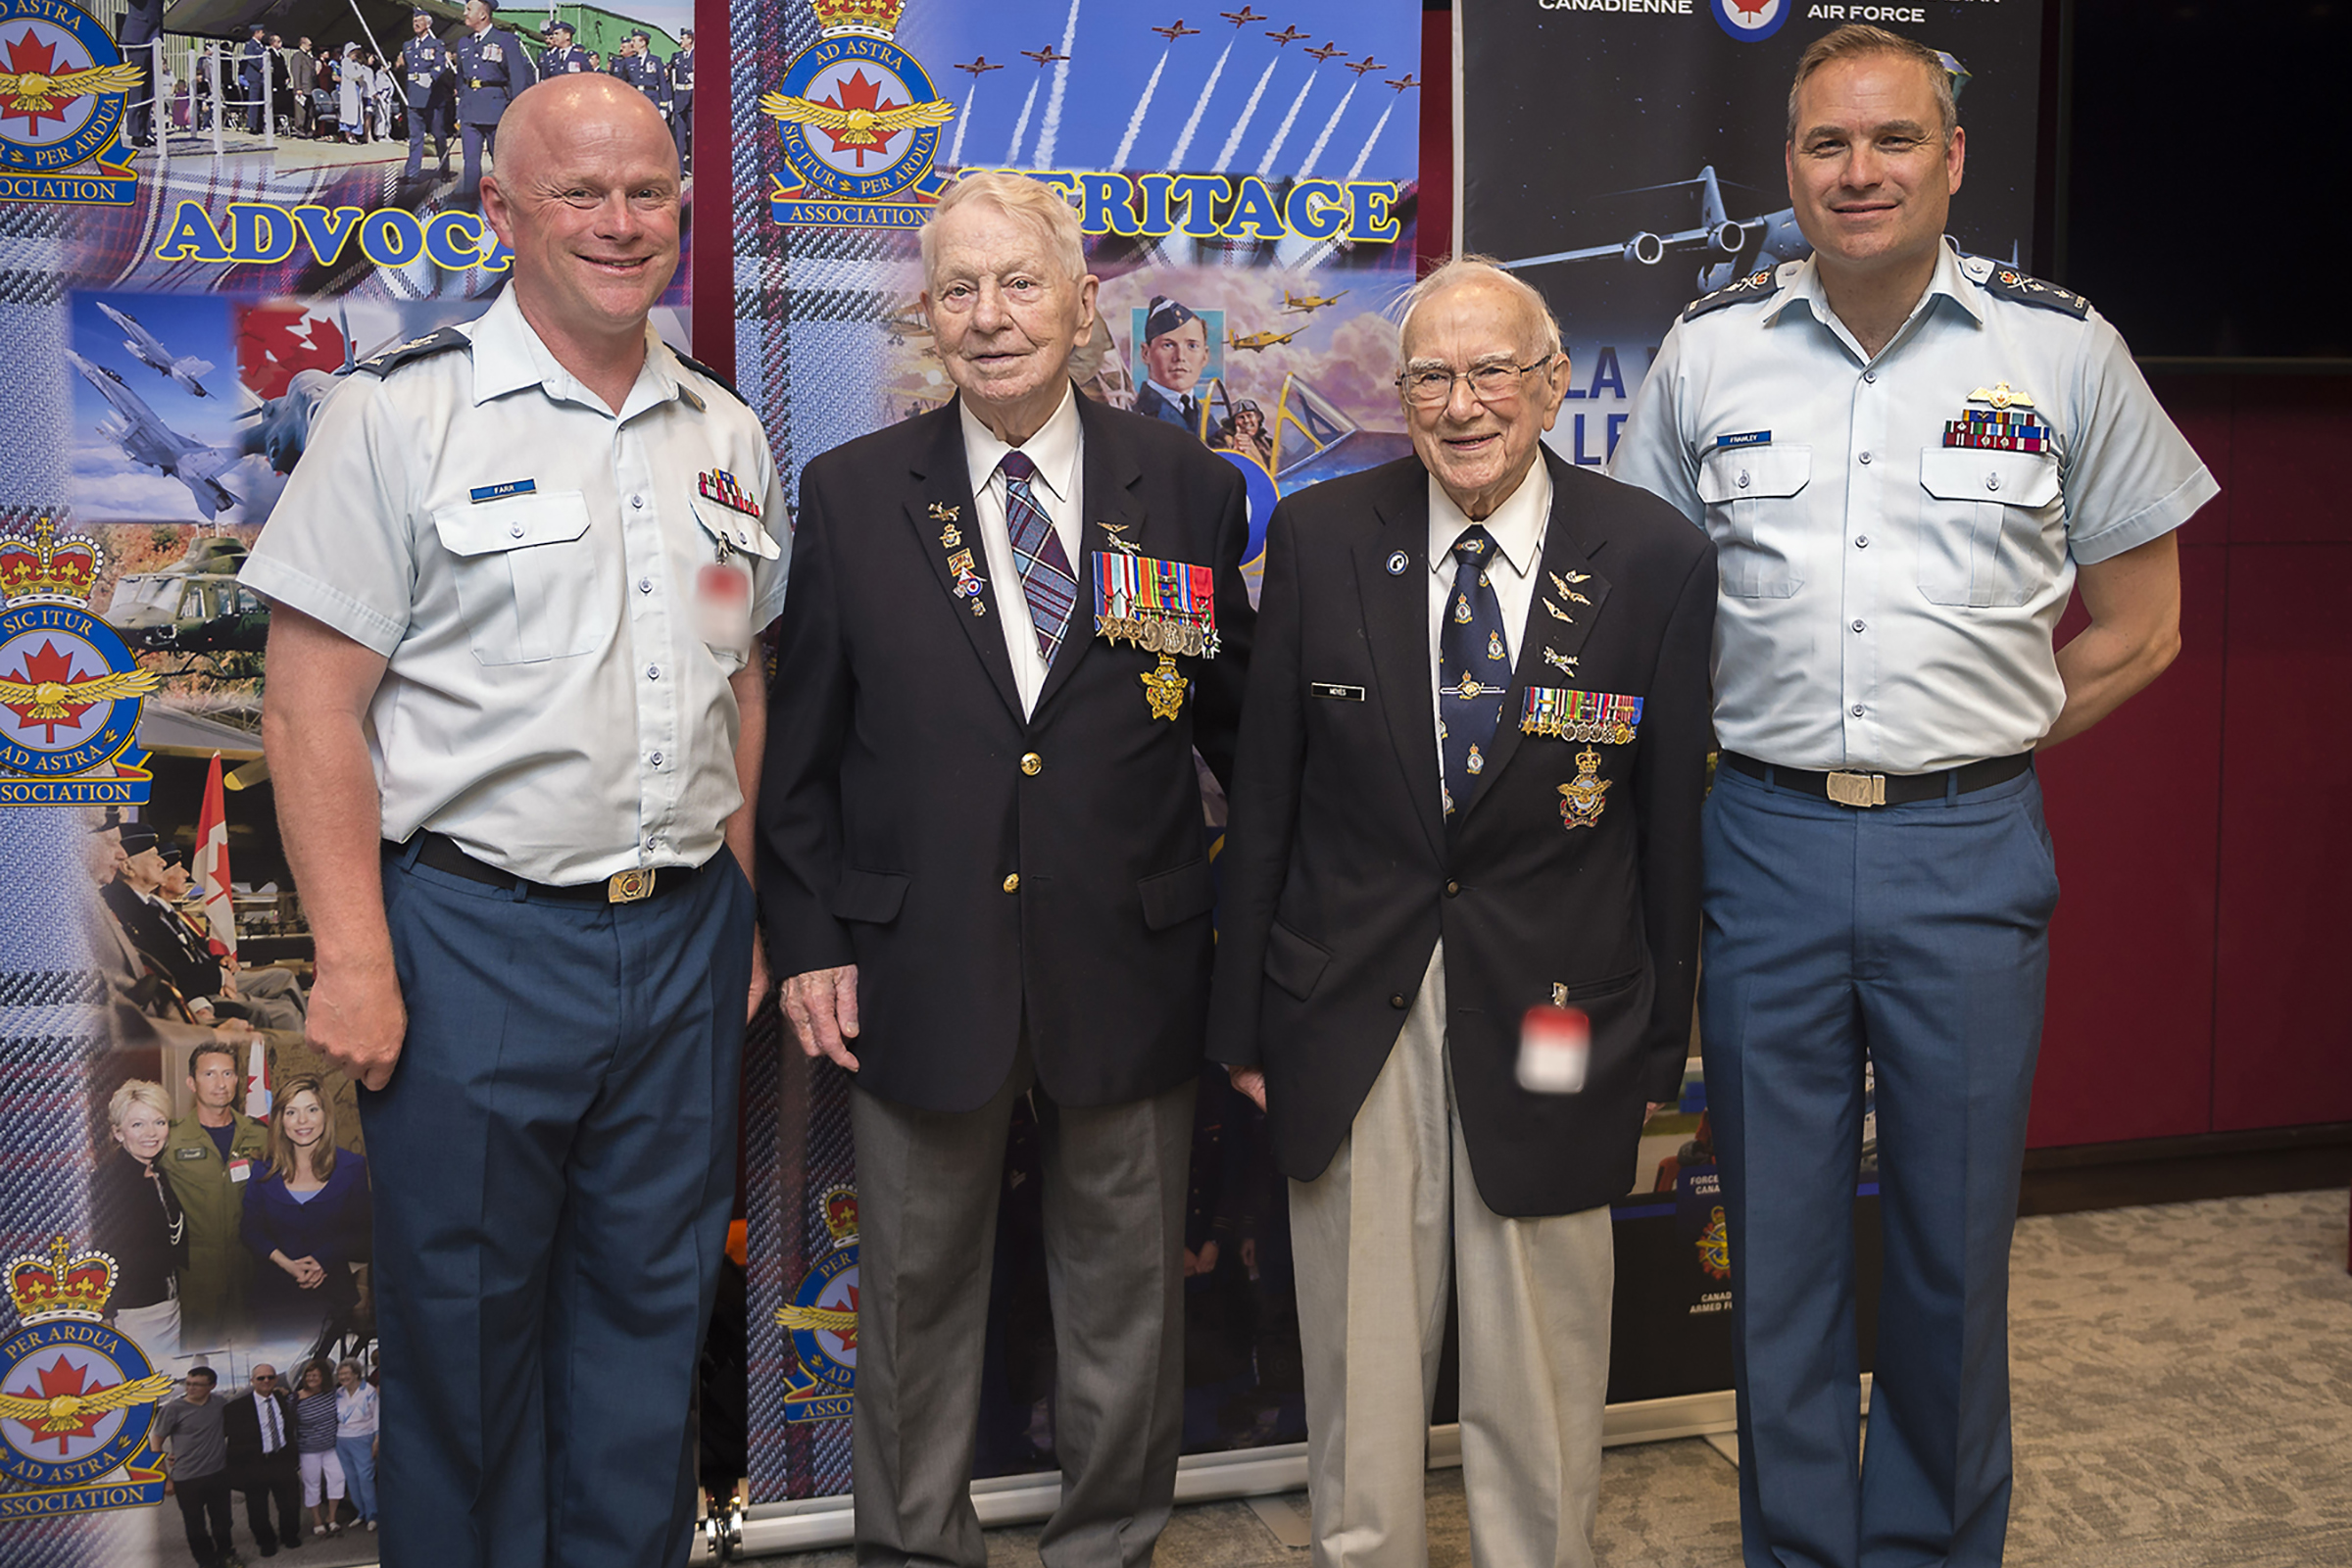 Two men in blue uniforms and two older men wearing dark blazers hung with medals stand in a row in front of display banners featuring aircraft, badges and people in uniform.